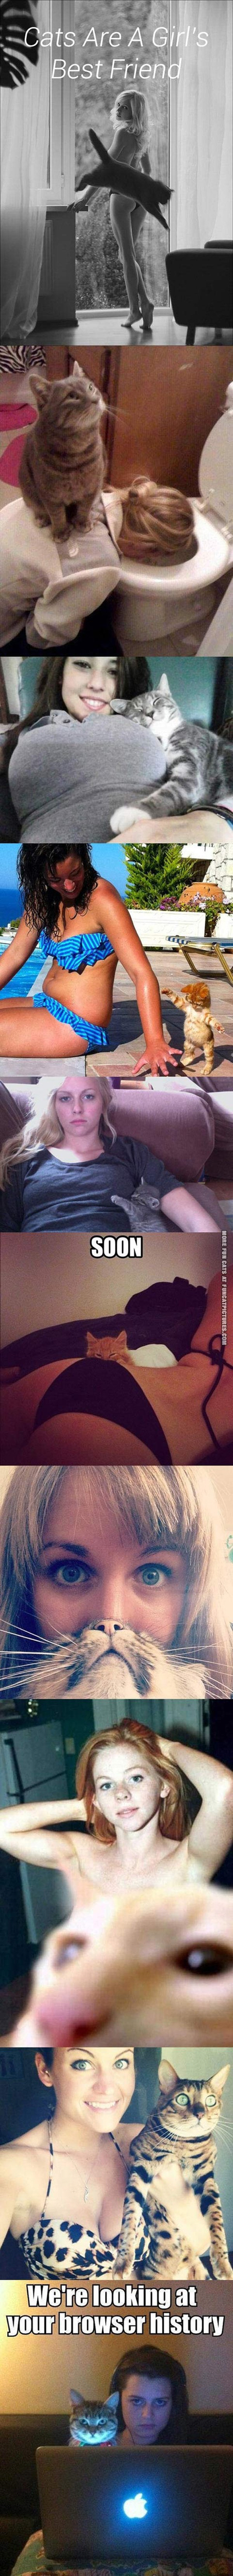 funny cat-pics-cats-are-a-girls-best-friend